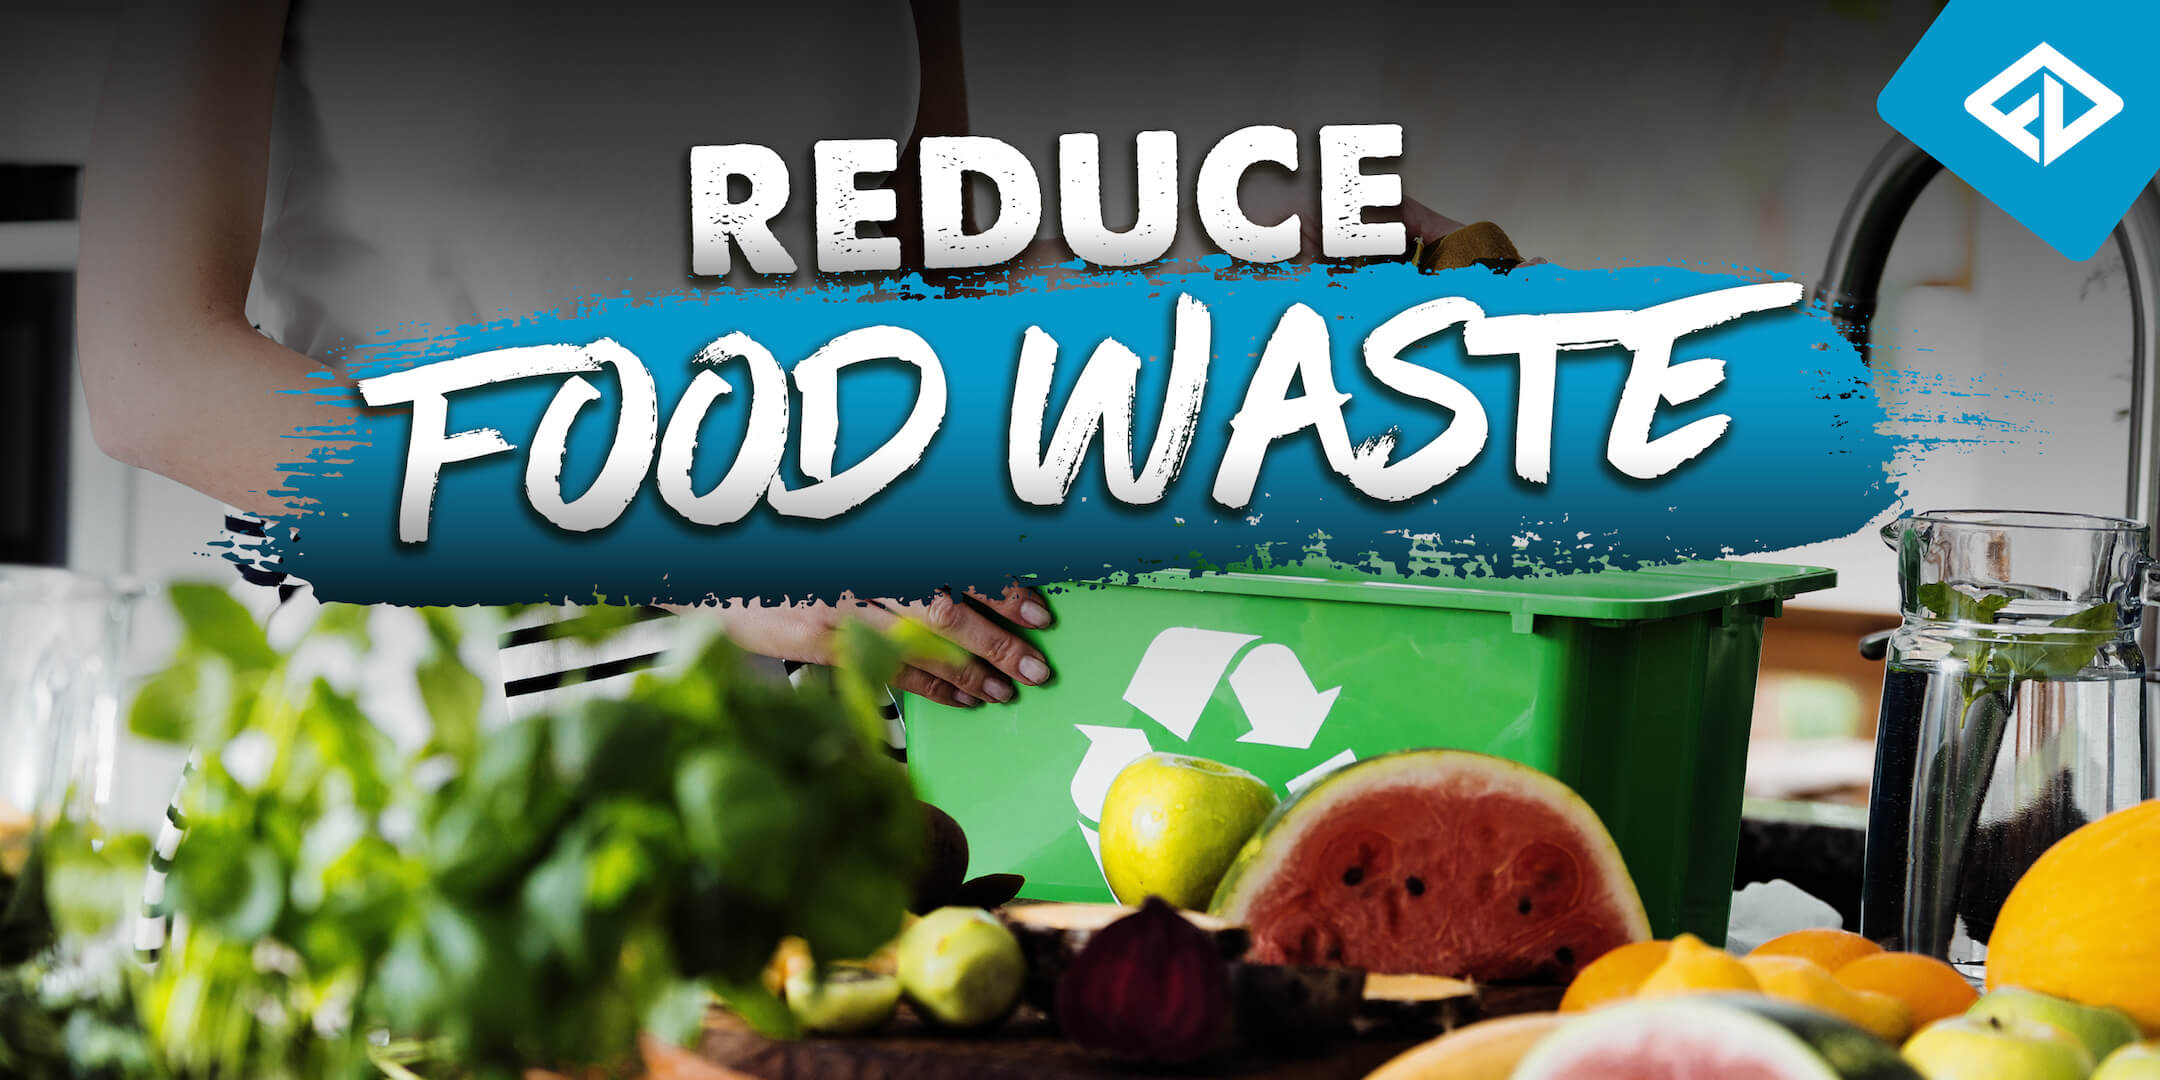 Reduce Food Waste